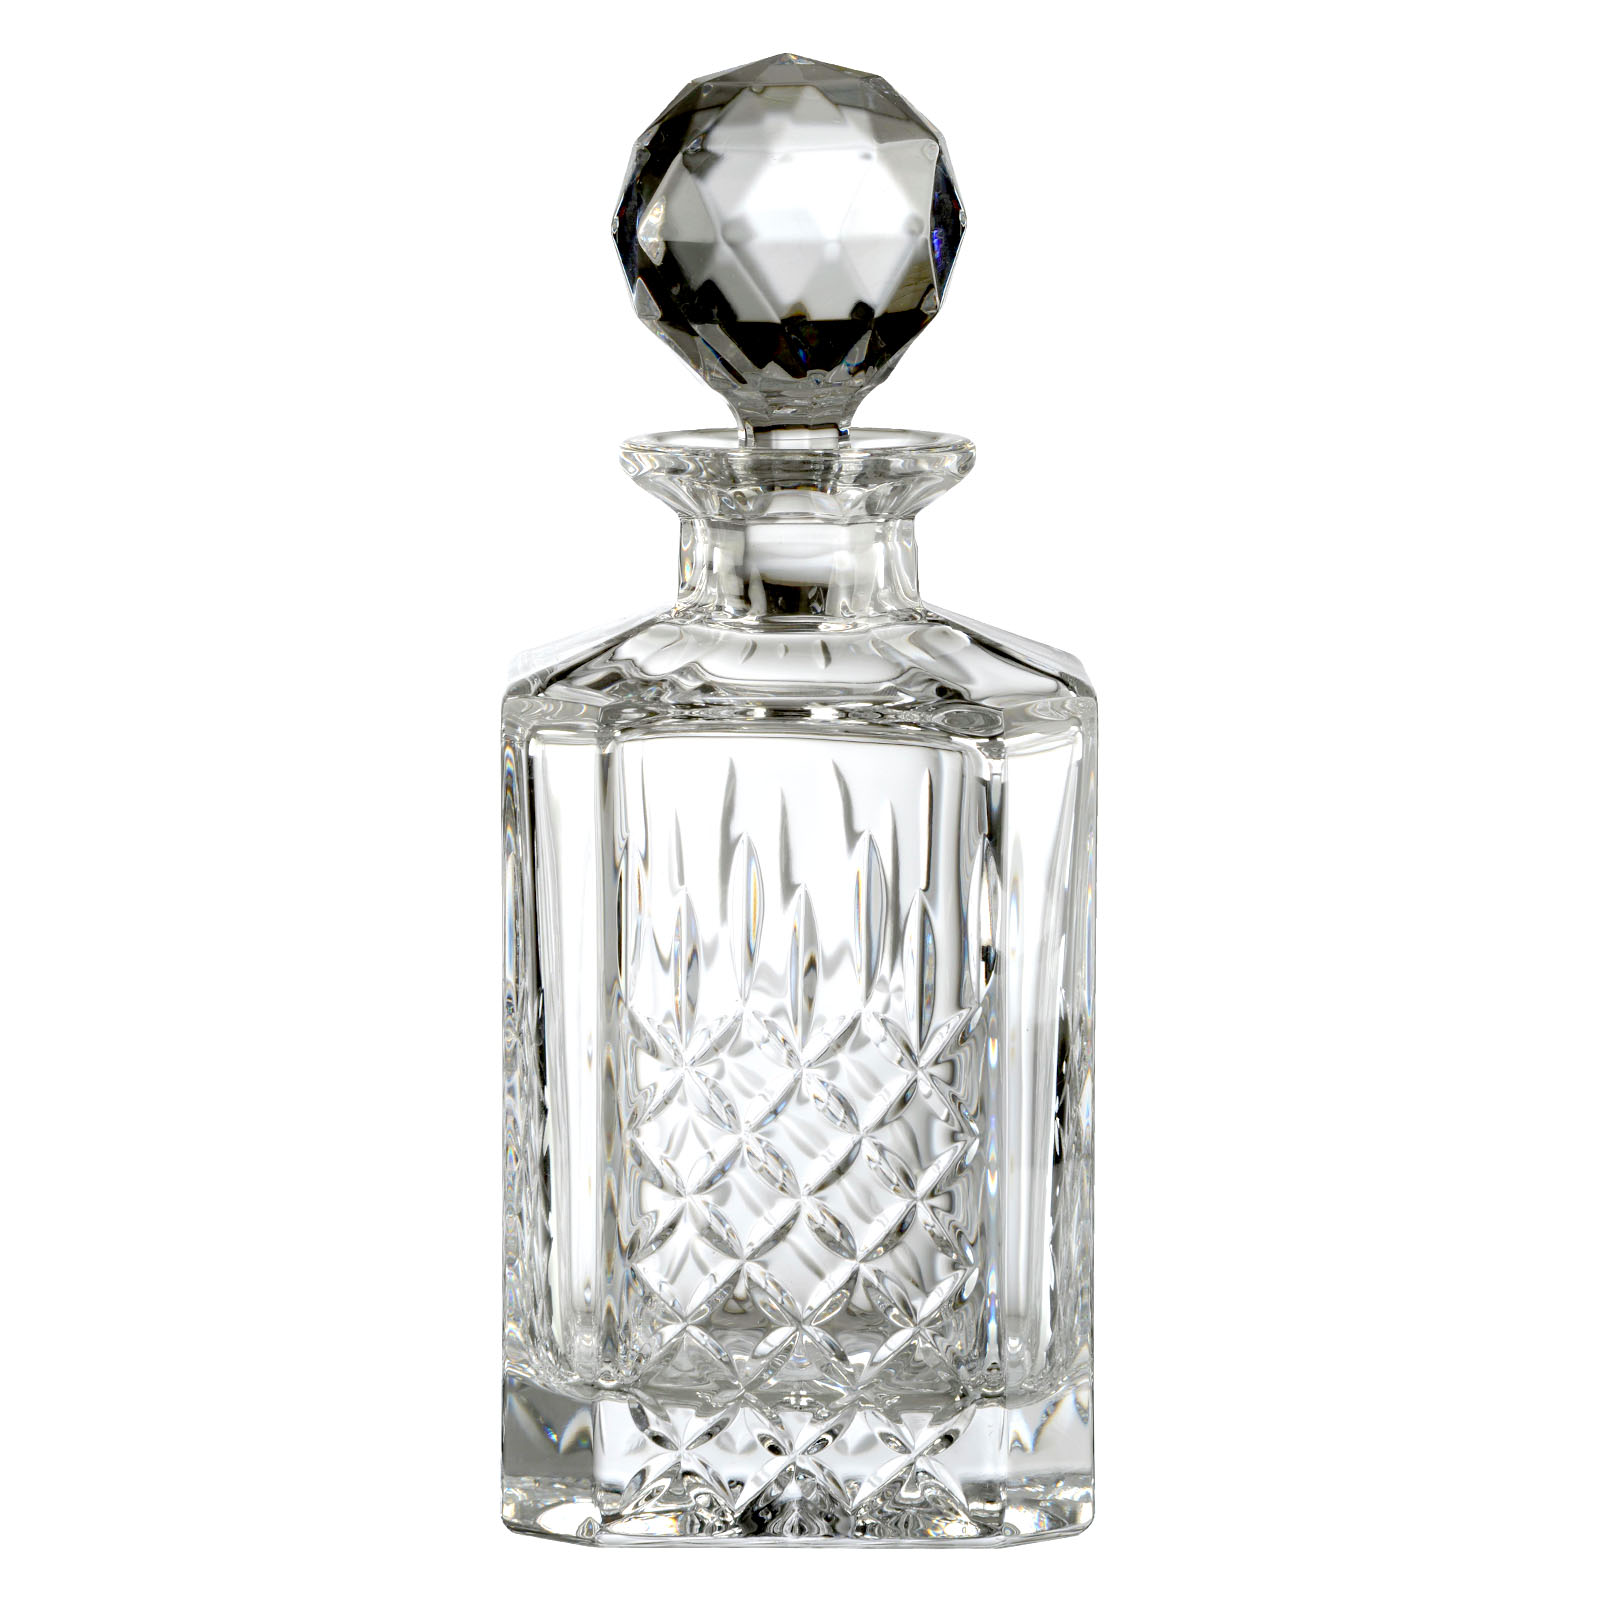 Dorchester Square Decanter Fully Cut (24%) by Dornberger